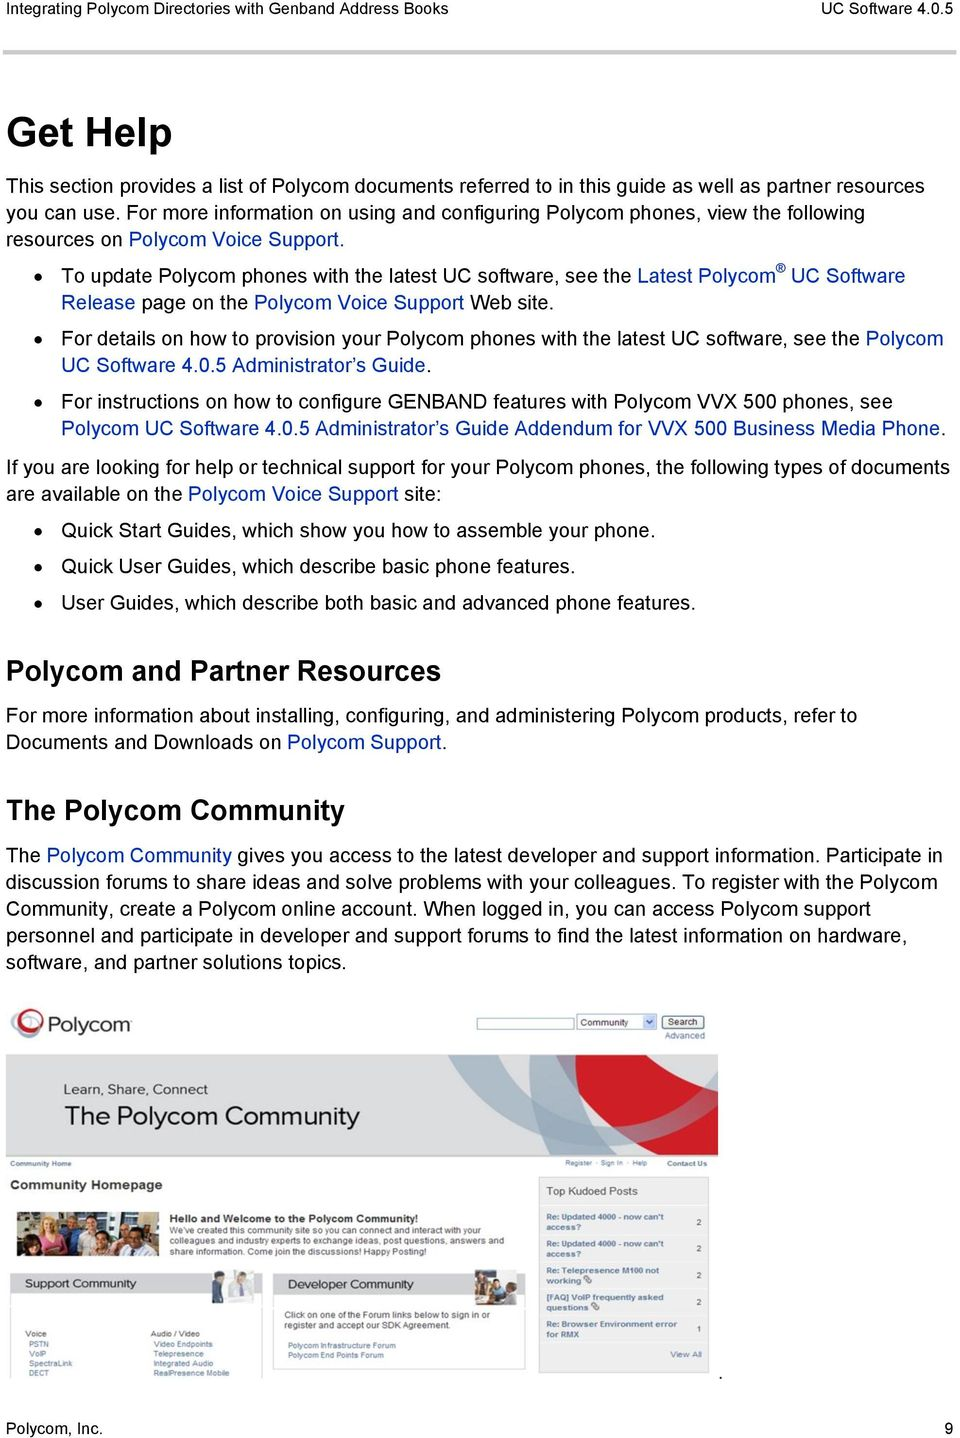 For more information on using and configuring Polycom phones, view the following resources on Polycom Voice Support.